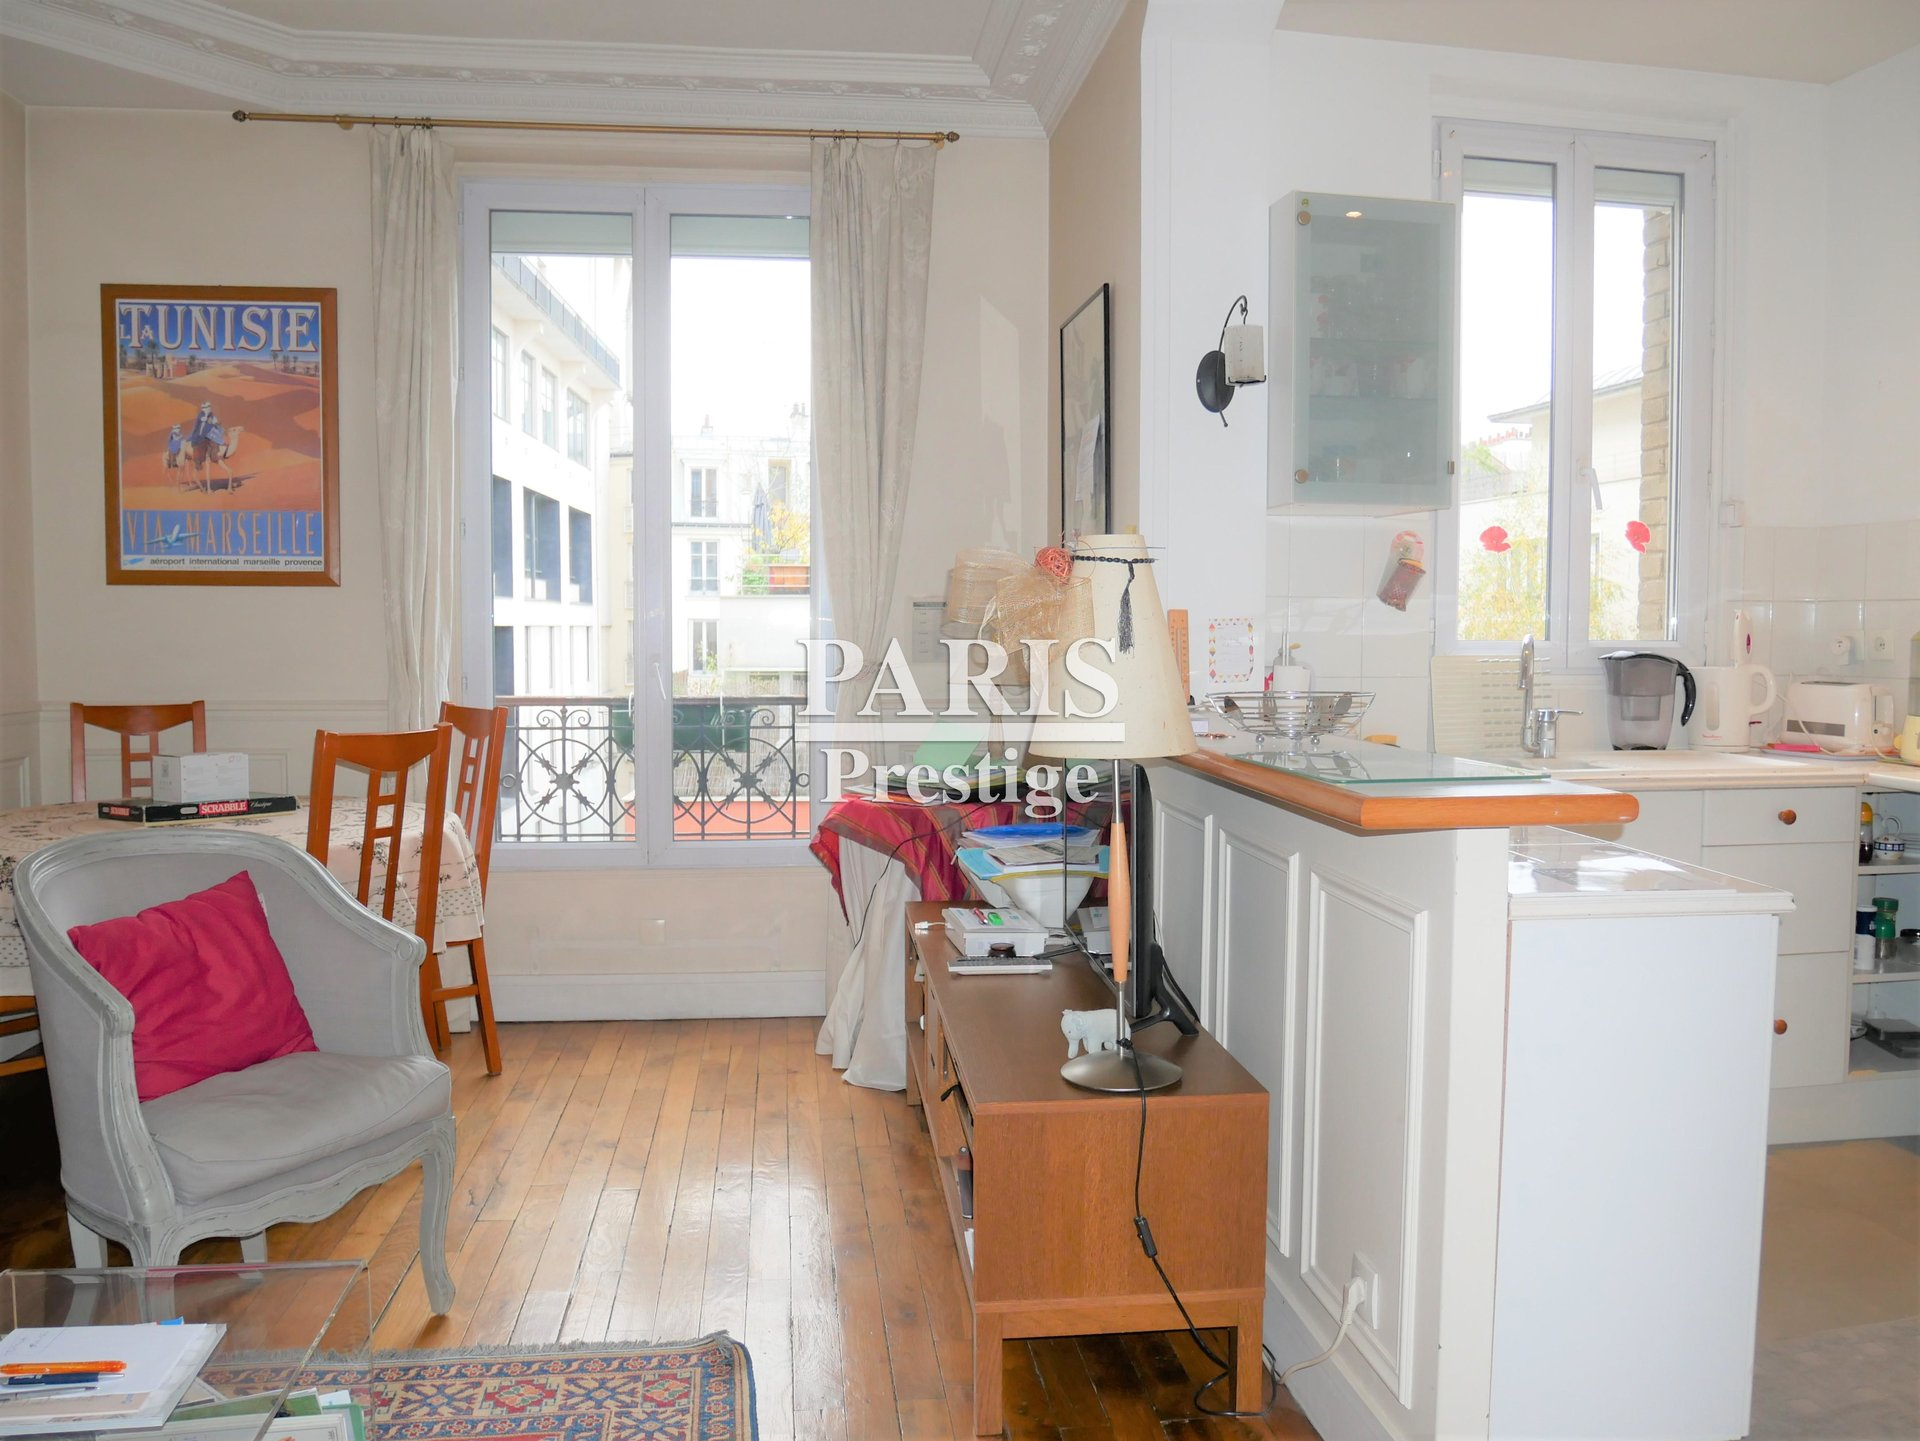 Sale Apartment - Paris 18th (Paris 18ème)